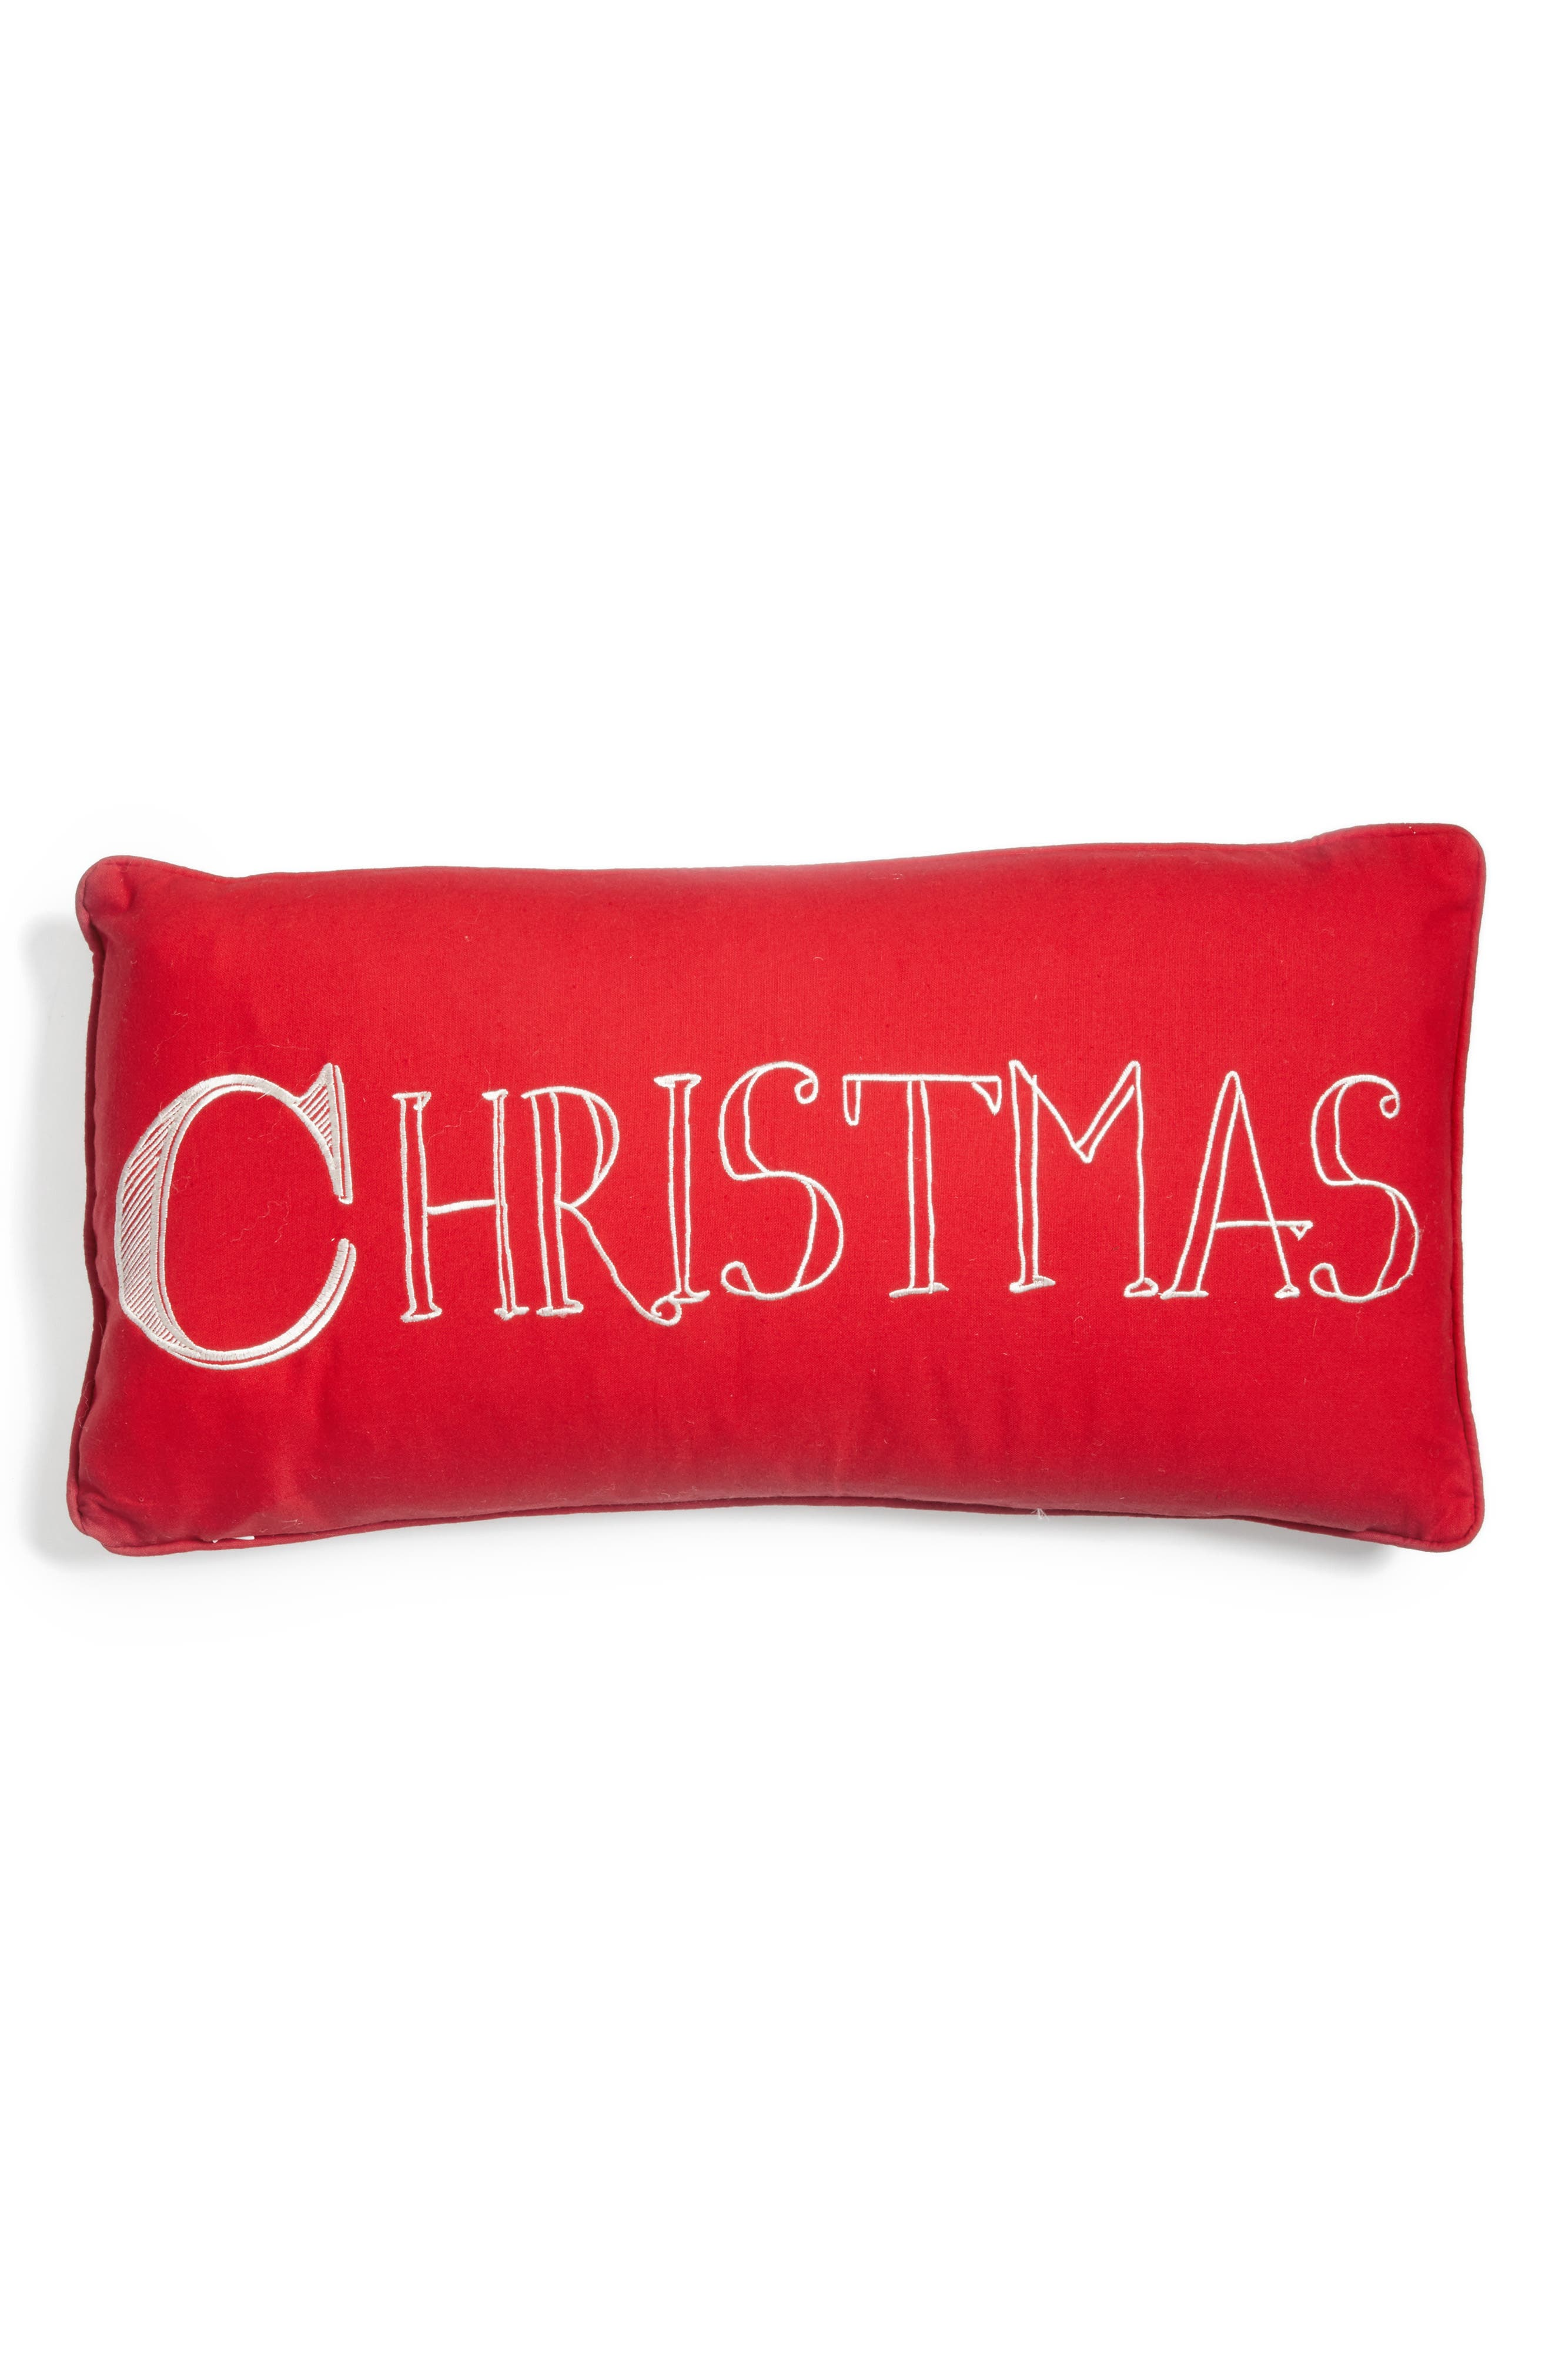 Merry Christmas Reversible Pillow,                             Main thumbnail 1, color,                             RED